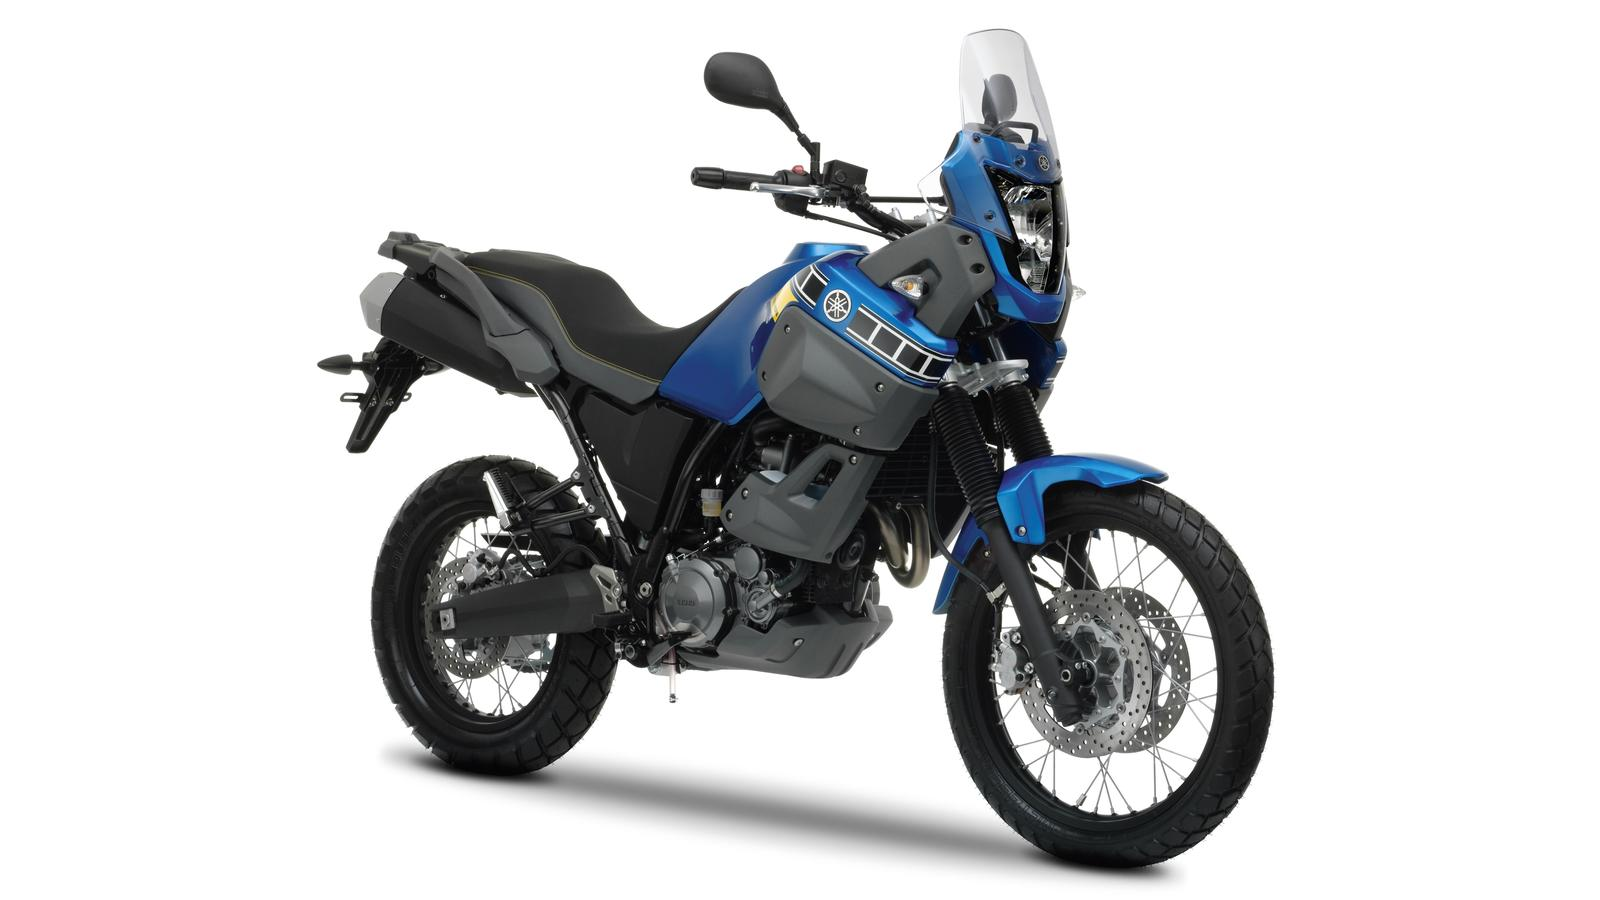 fiche revue technique yamaha xt 660 z t n r 2011. Black Bedroom Furniture Sets. Home Design Ideas